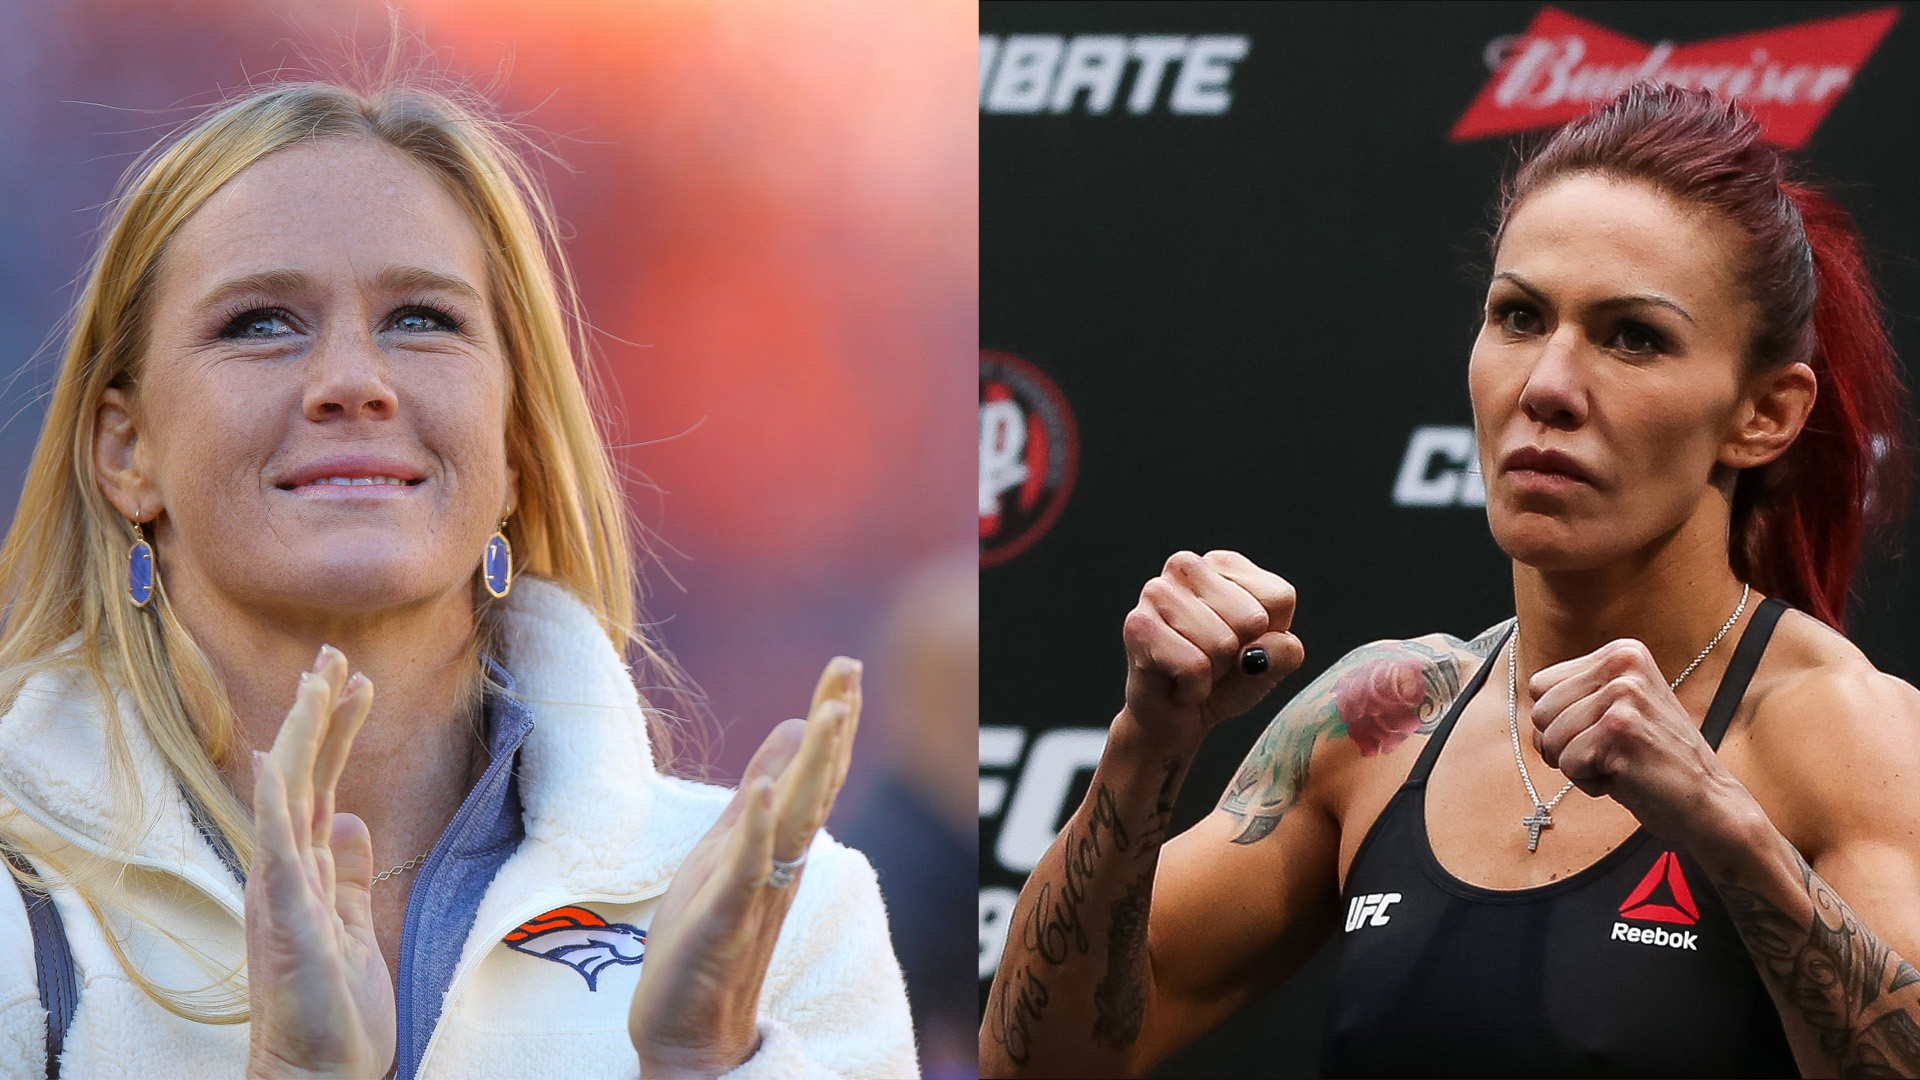 Cris 'Cyborg' Justino and Holly Holm will fight for UFC featherweight title